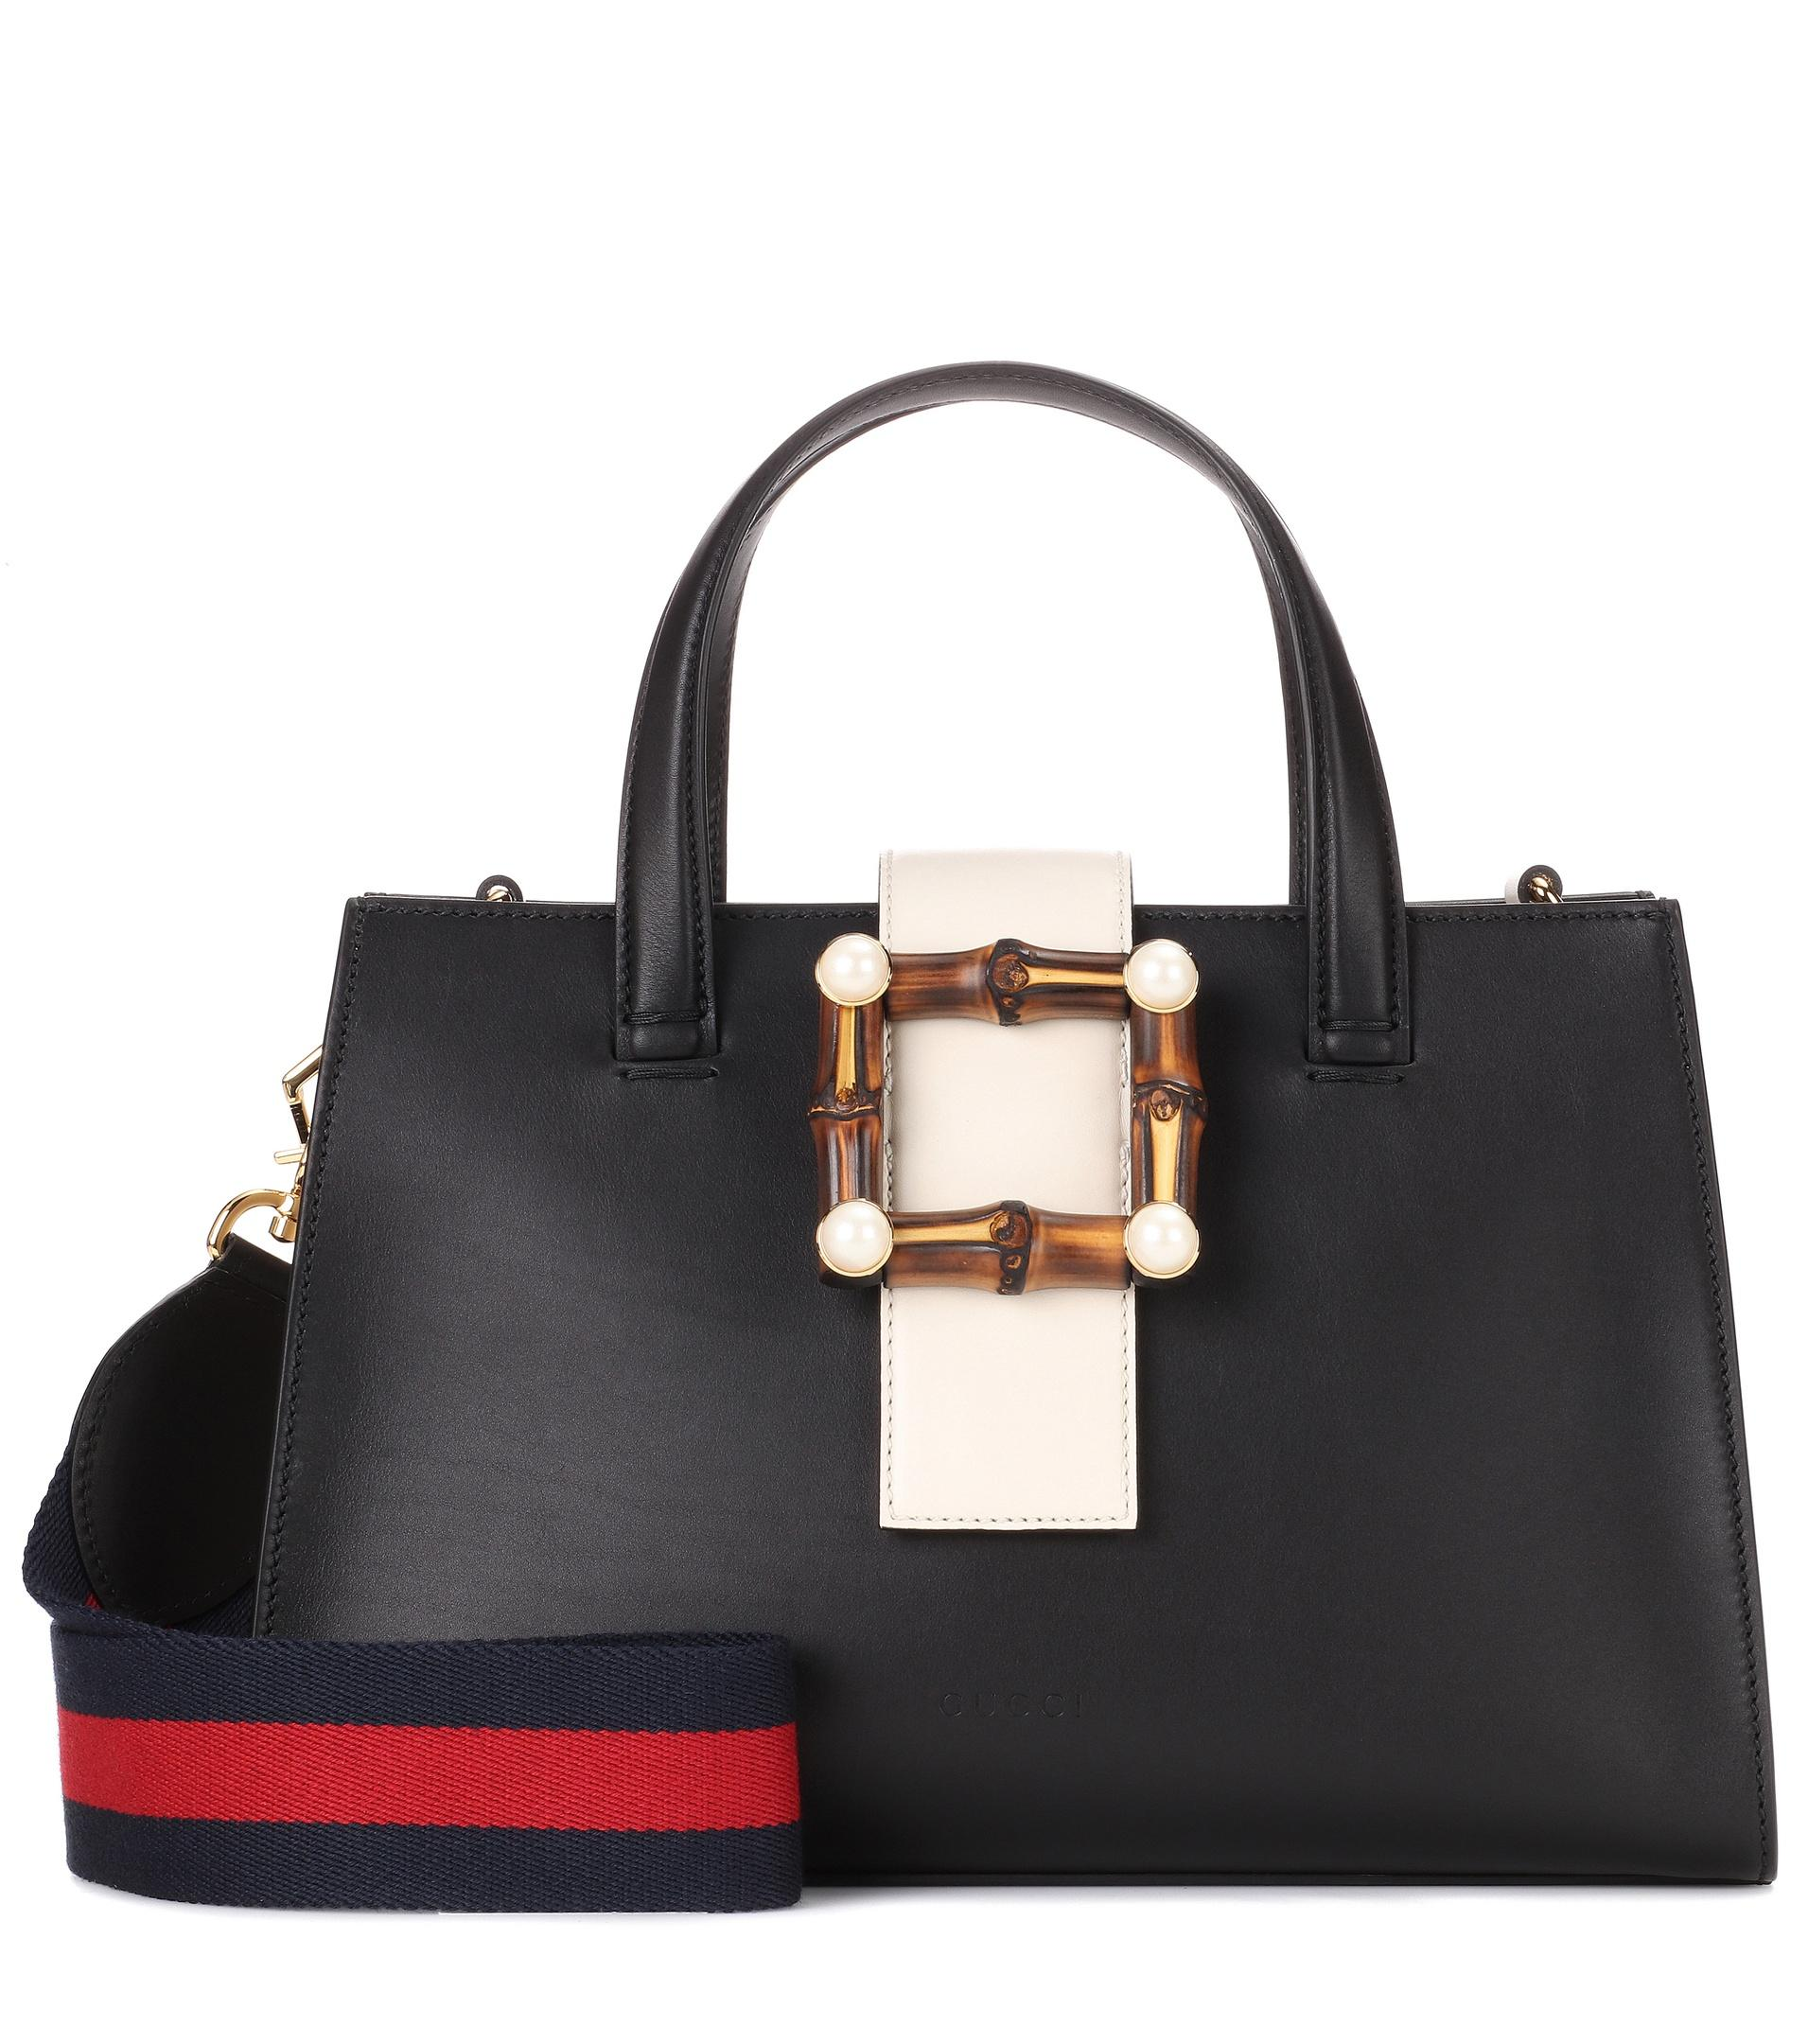 ae622579c7b Lyst - Gucci Nymphaea Small Embellished Leather Tote in Black